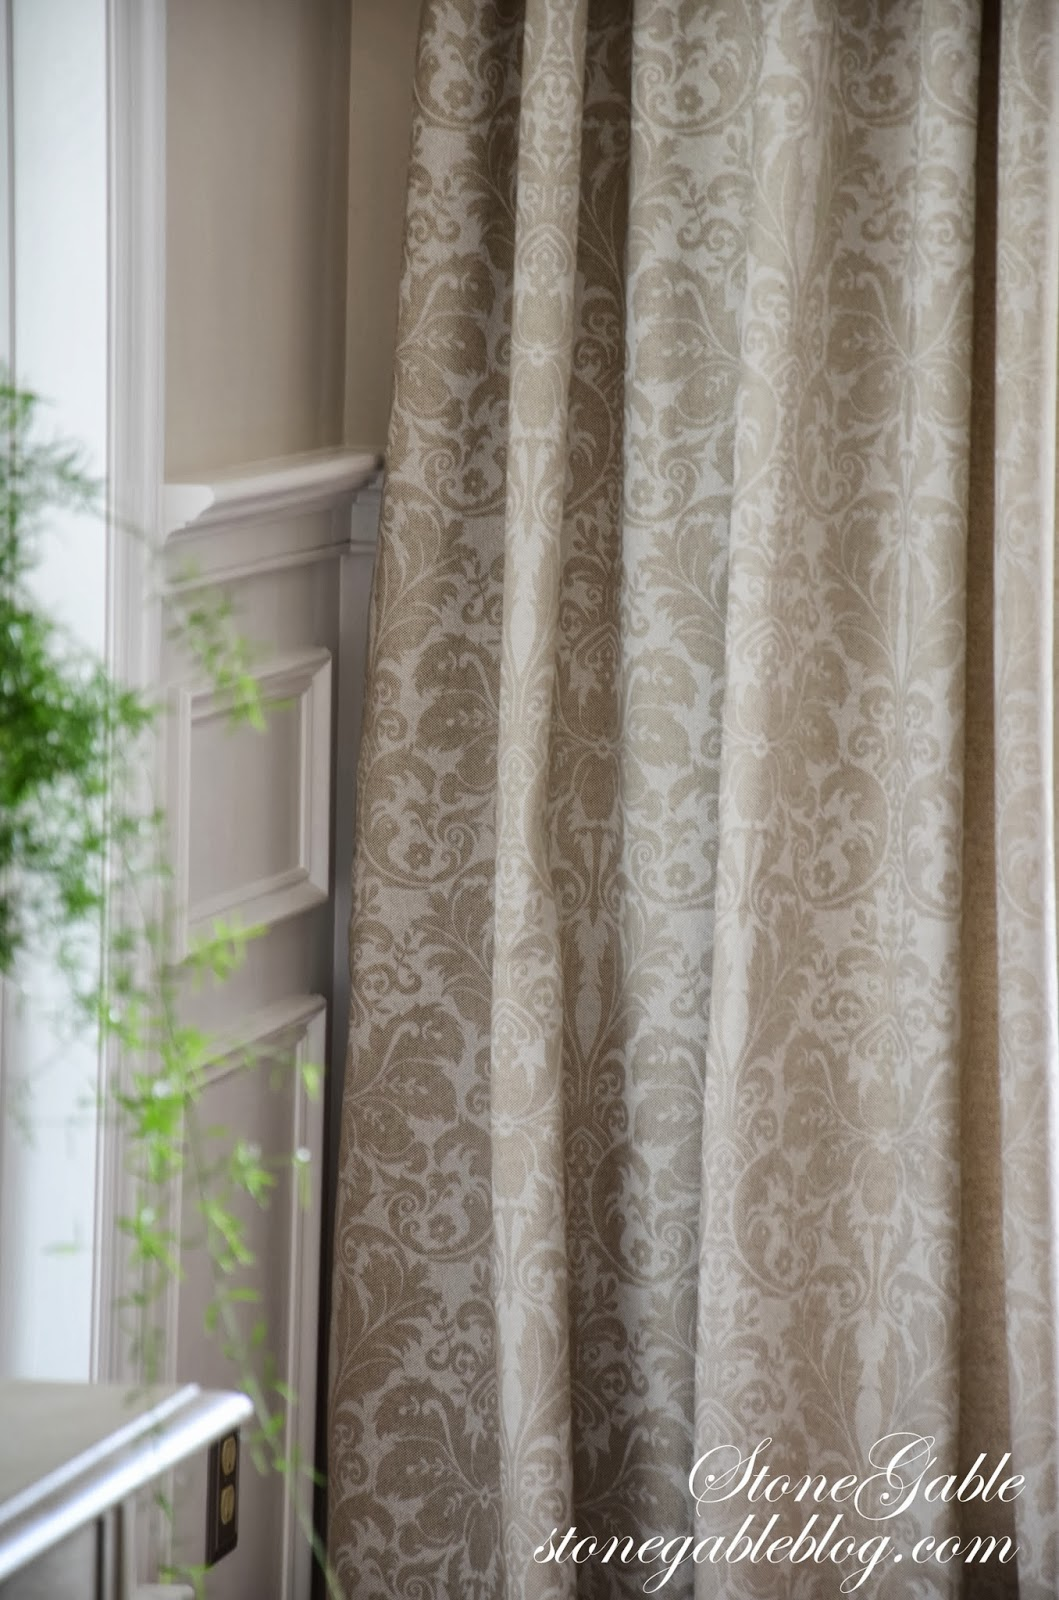 Dining room curtains stonegable for Ideas for dining room curtains